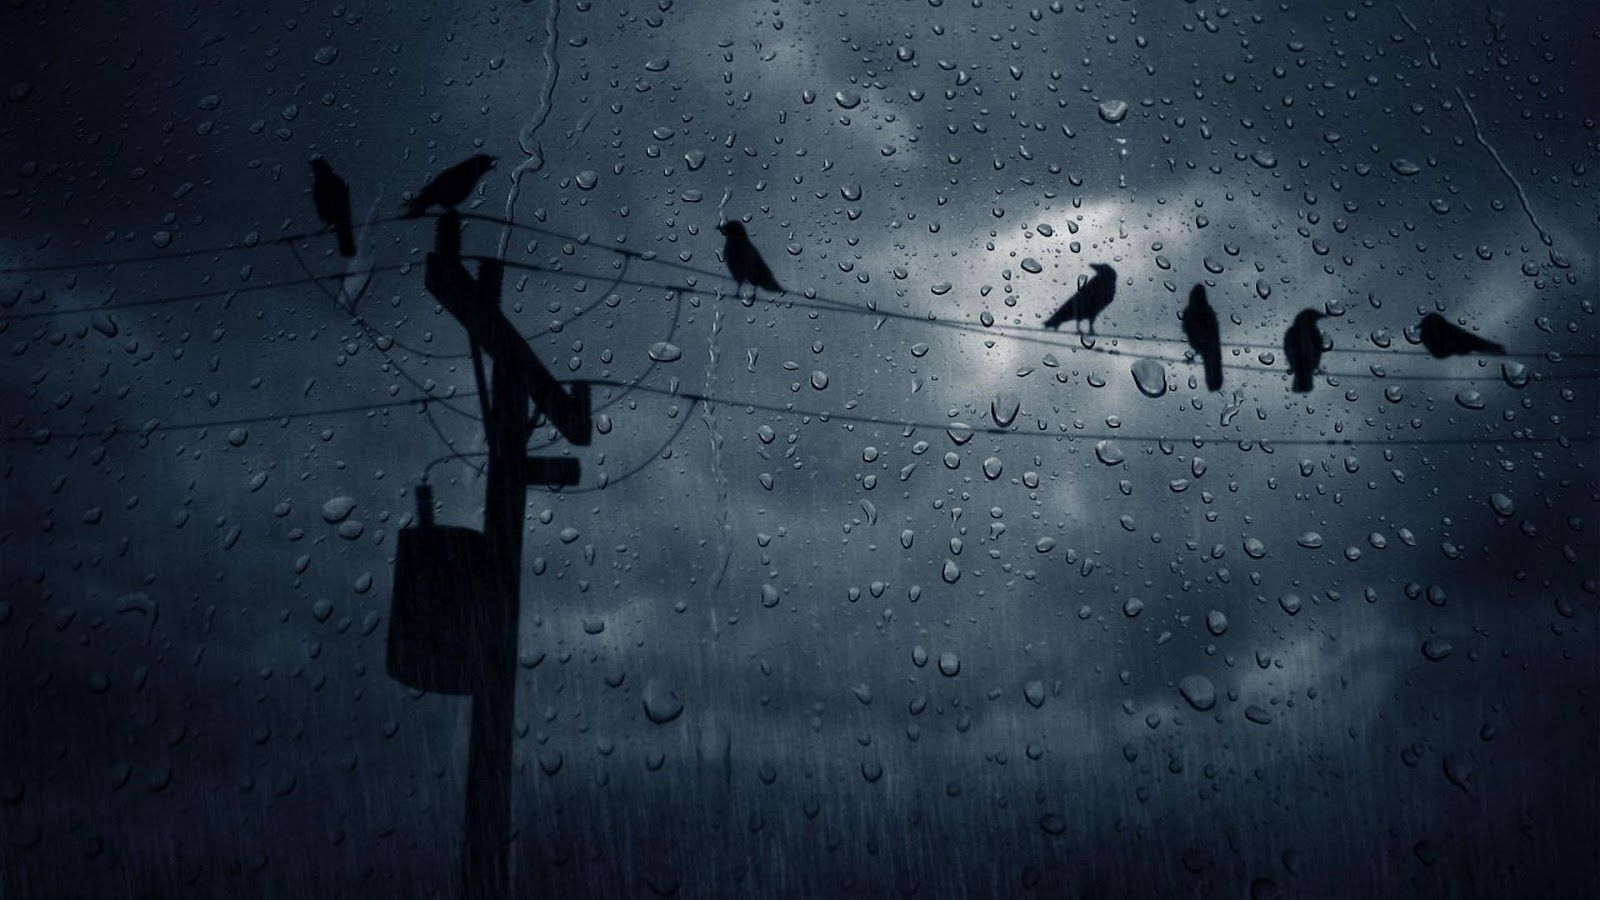 1600x900 Sad Rain Wallpaper Images #nJf | Earth | Pinterest | Rain